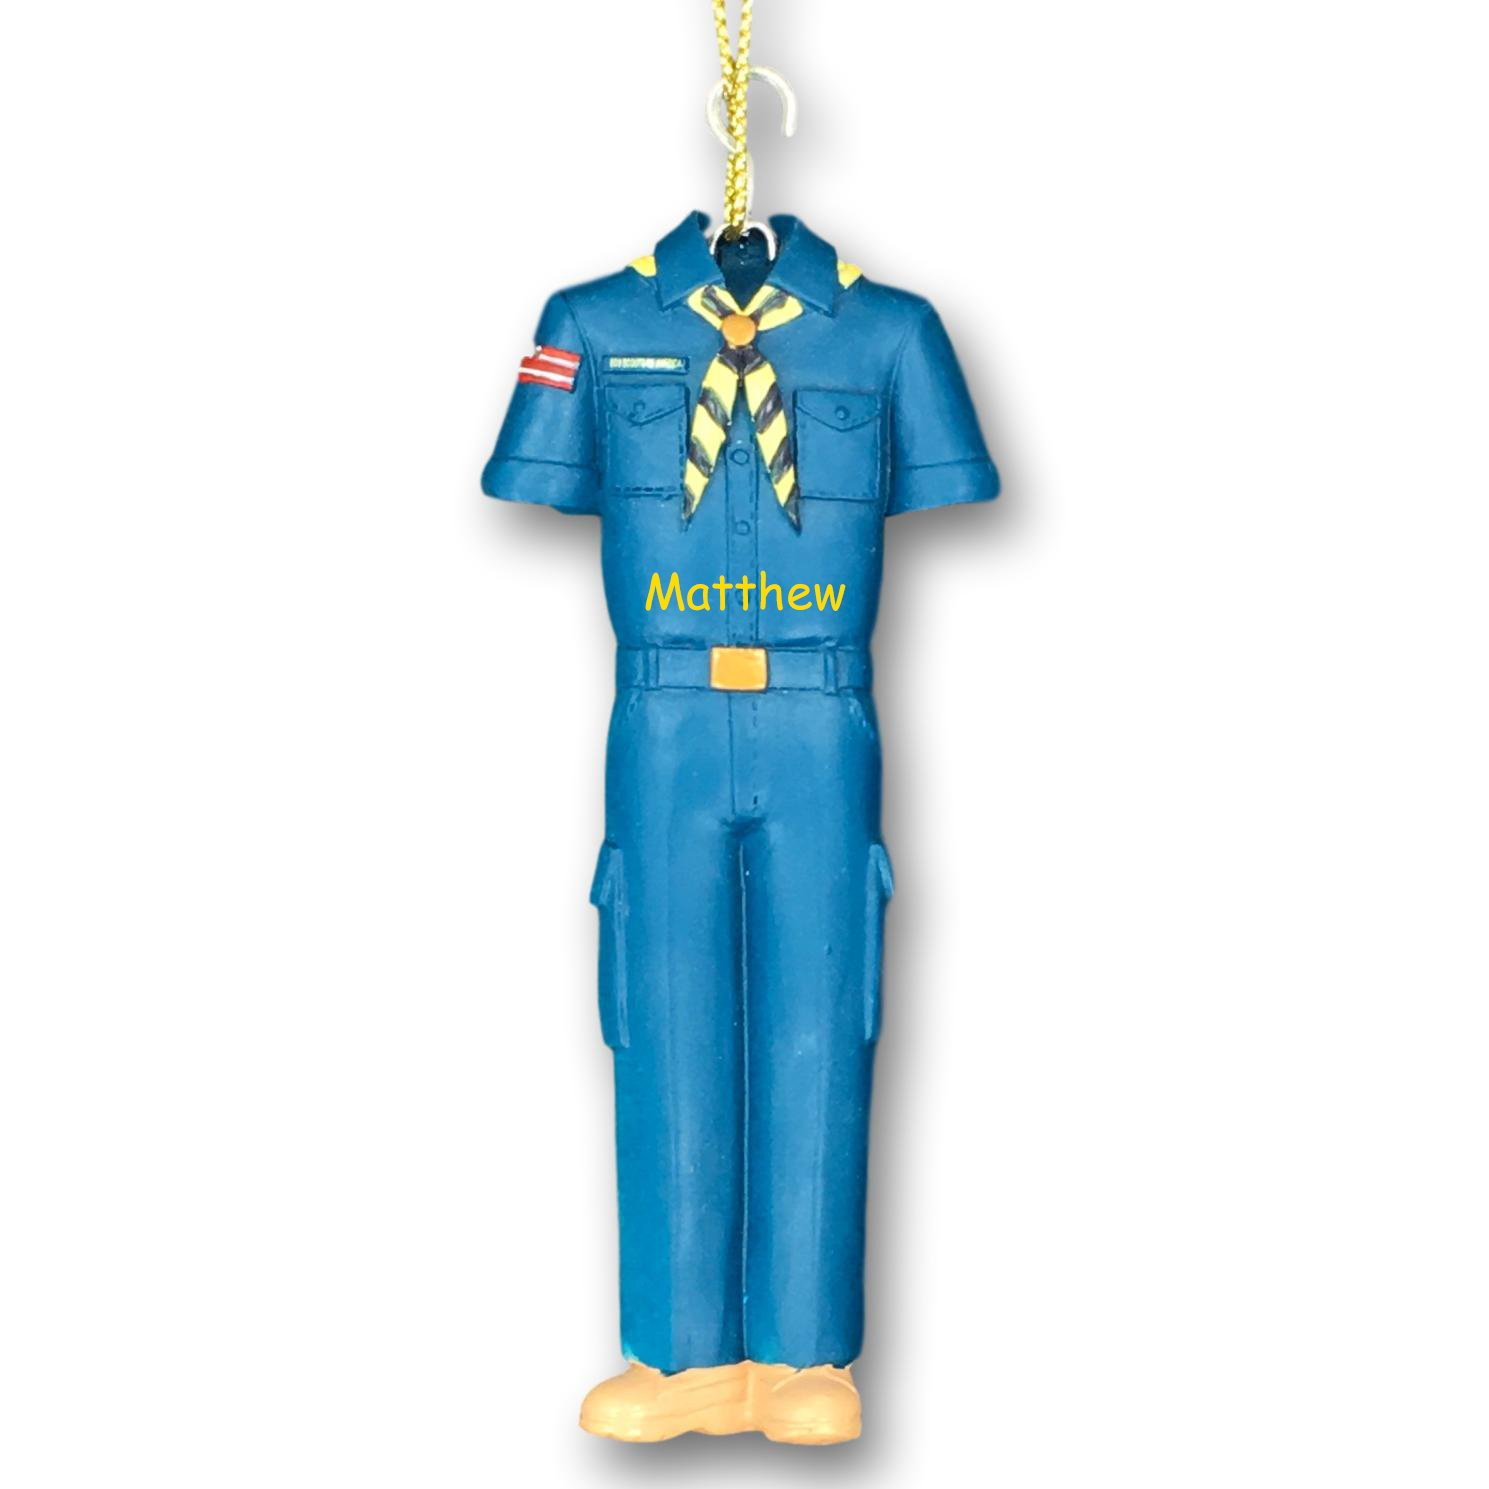 Kurt Adler Personalized Boy Scouts of America Blue Cub Scout Youth Scout or Scout Leader Uniform with Neck Slide and Badges Hanging Christmas Ornament with Custom Name